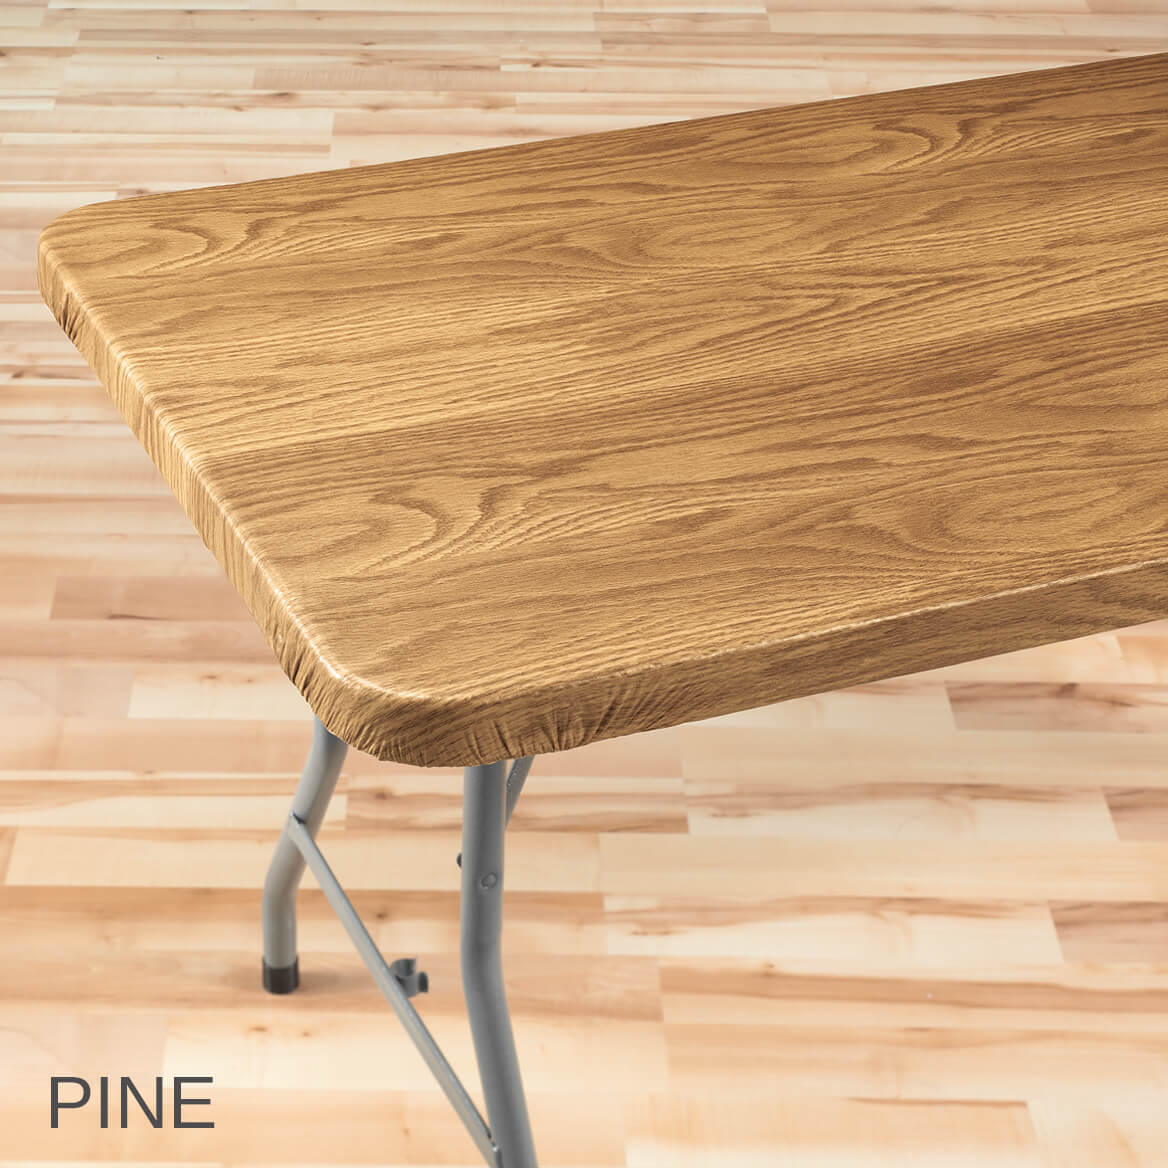 wood grain elasticized table cover wood table cover miles kimball